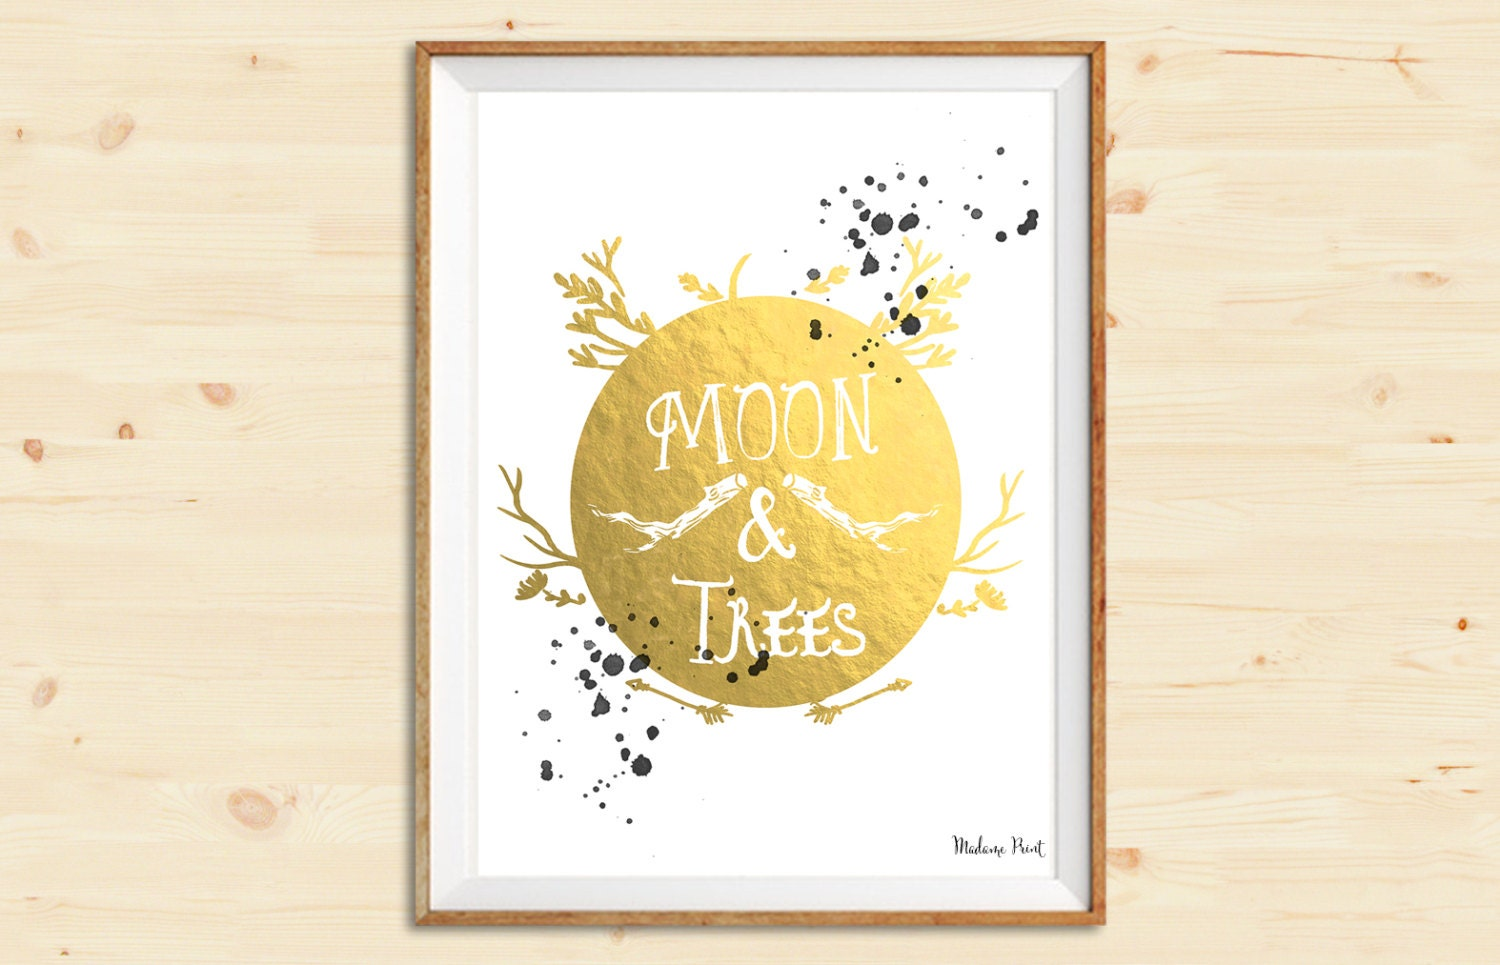 Moon and Trees Tumblr Quote Gold Foil Watercolor Print Wall